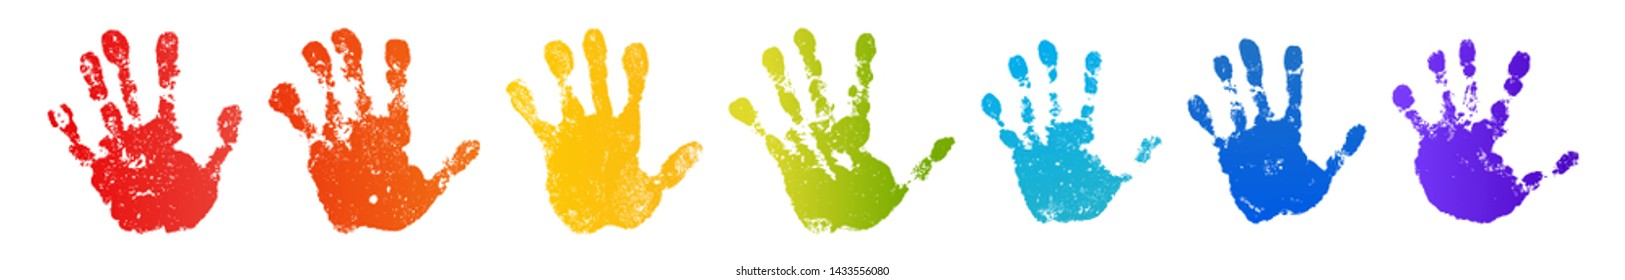 Hand rainbow print isolated on white background. Color child handprint. Creative paint hands prints. Happy childhood design. Artistic kids stamp, bright human fingers and palm Vector illustration - Shutterstock ID 1433556080